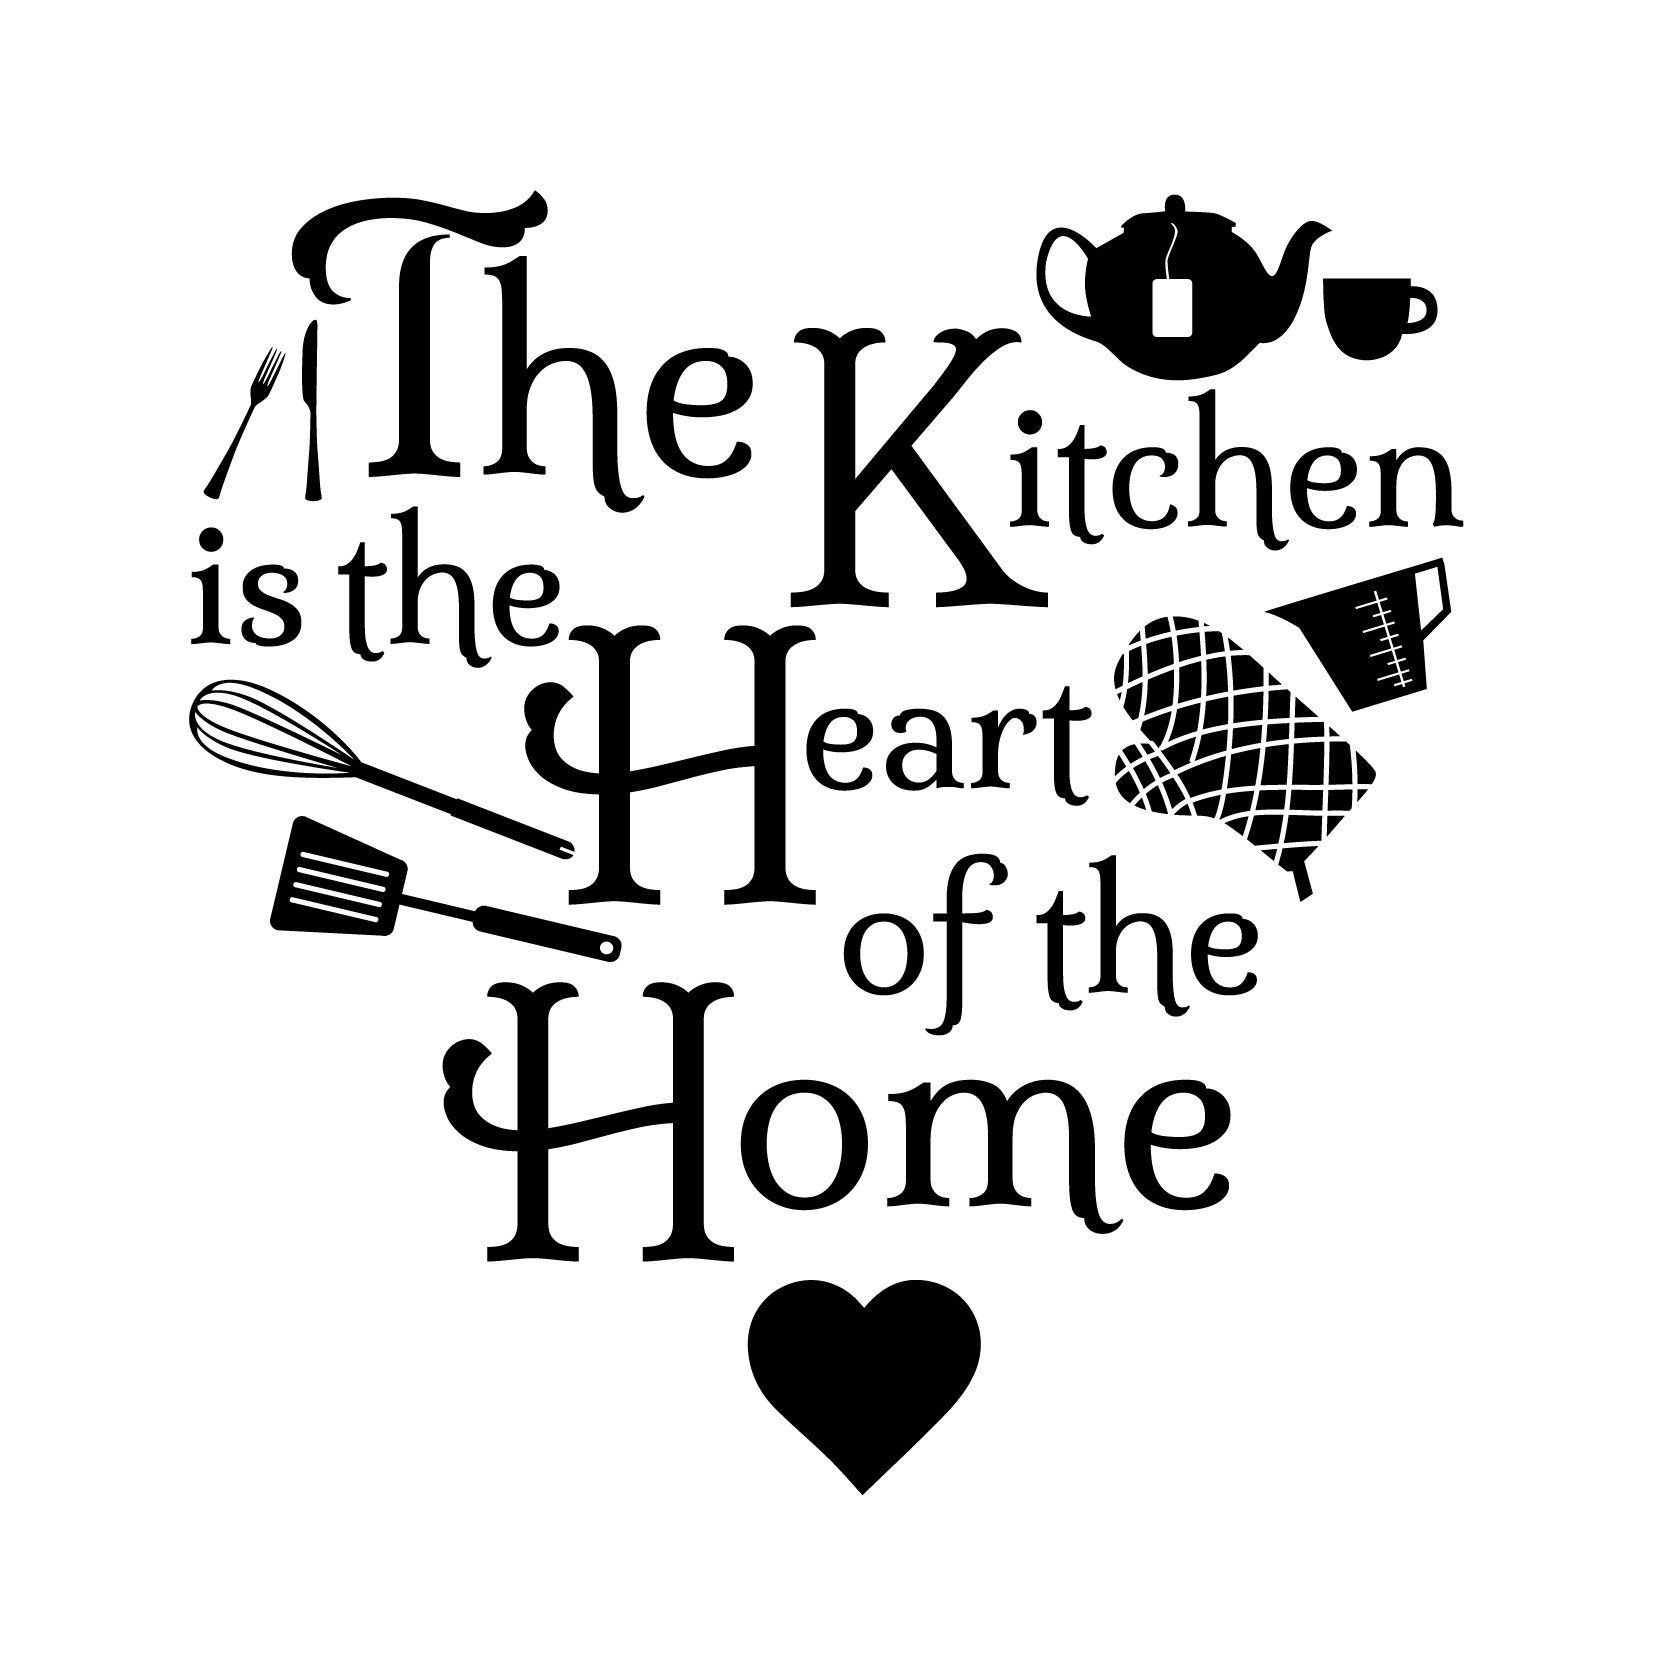 Kitchen Heart Home Icons Quote - Vinyl Wall Art Decal for Homes, Offices, Kids Rooms, Nurseries, Schools, High Schools, Colleges, Universities, Interior Designers, Architects, Remodelers